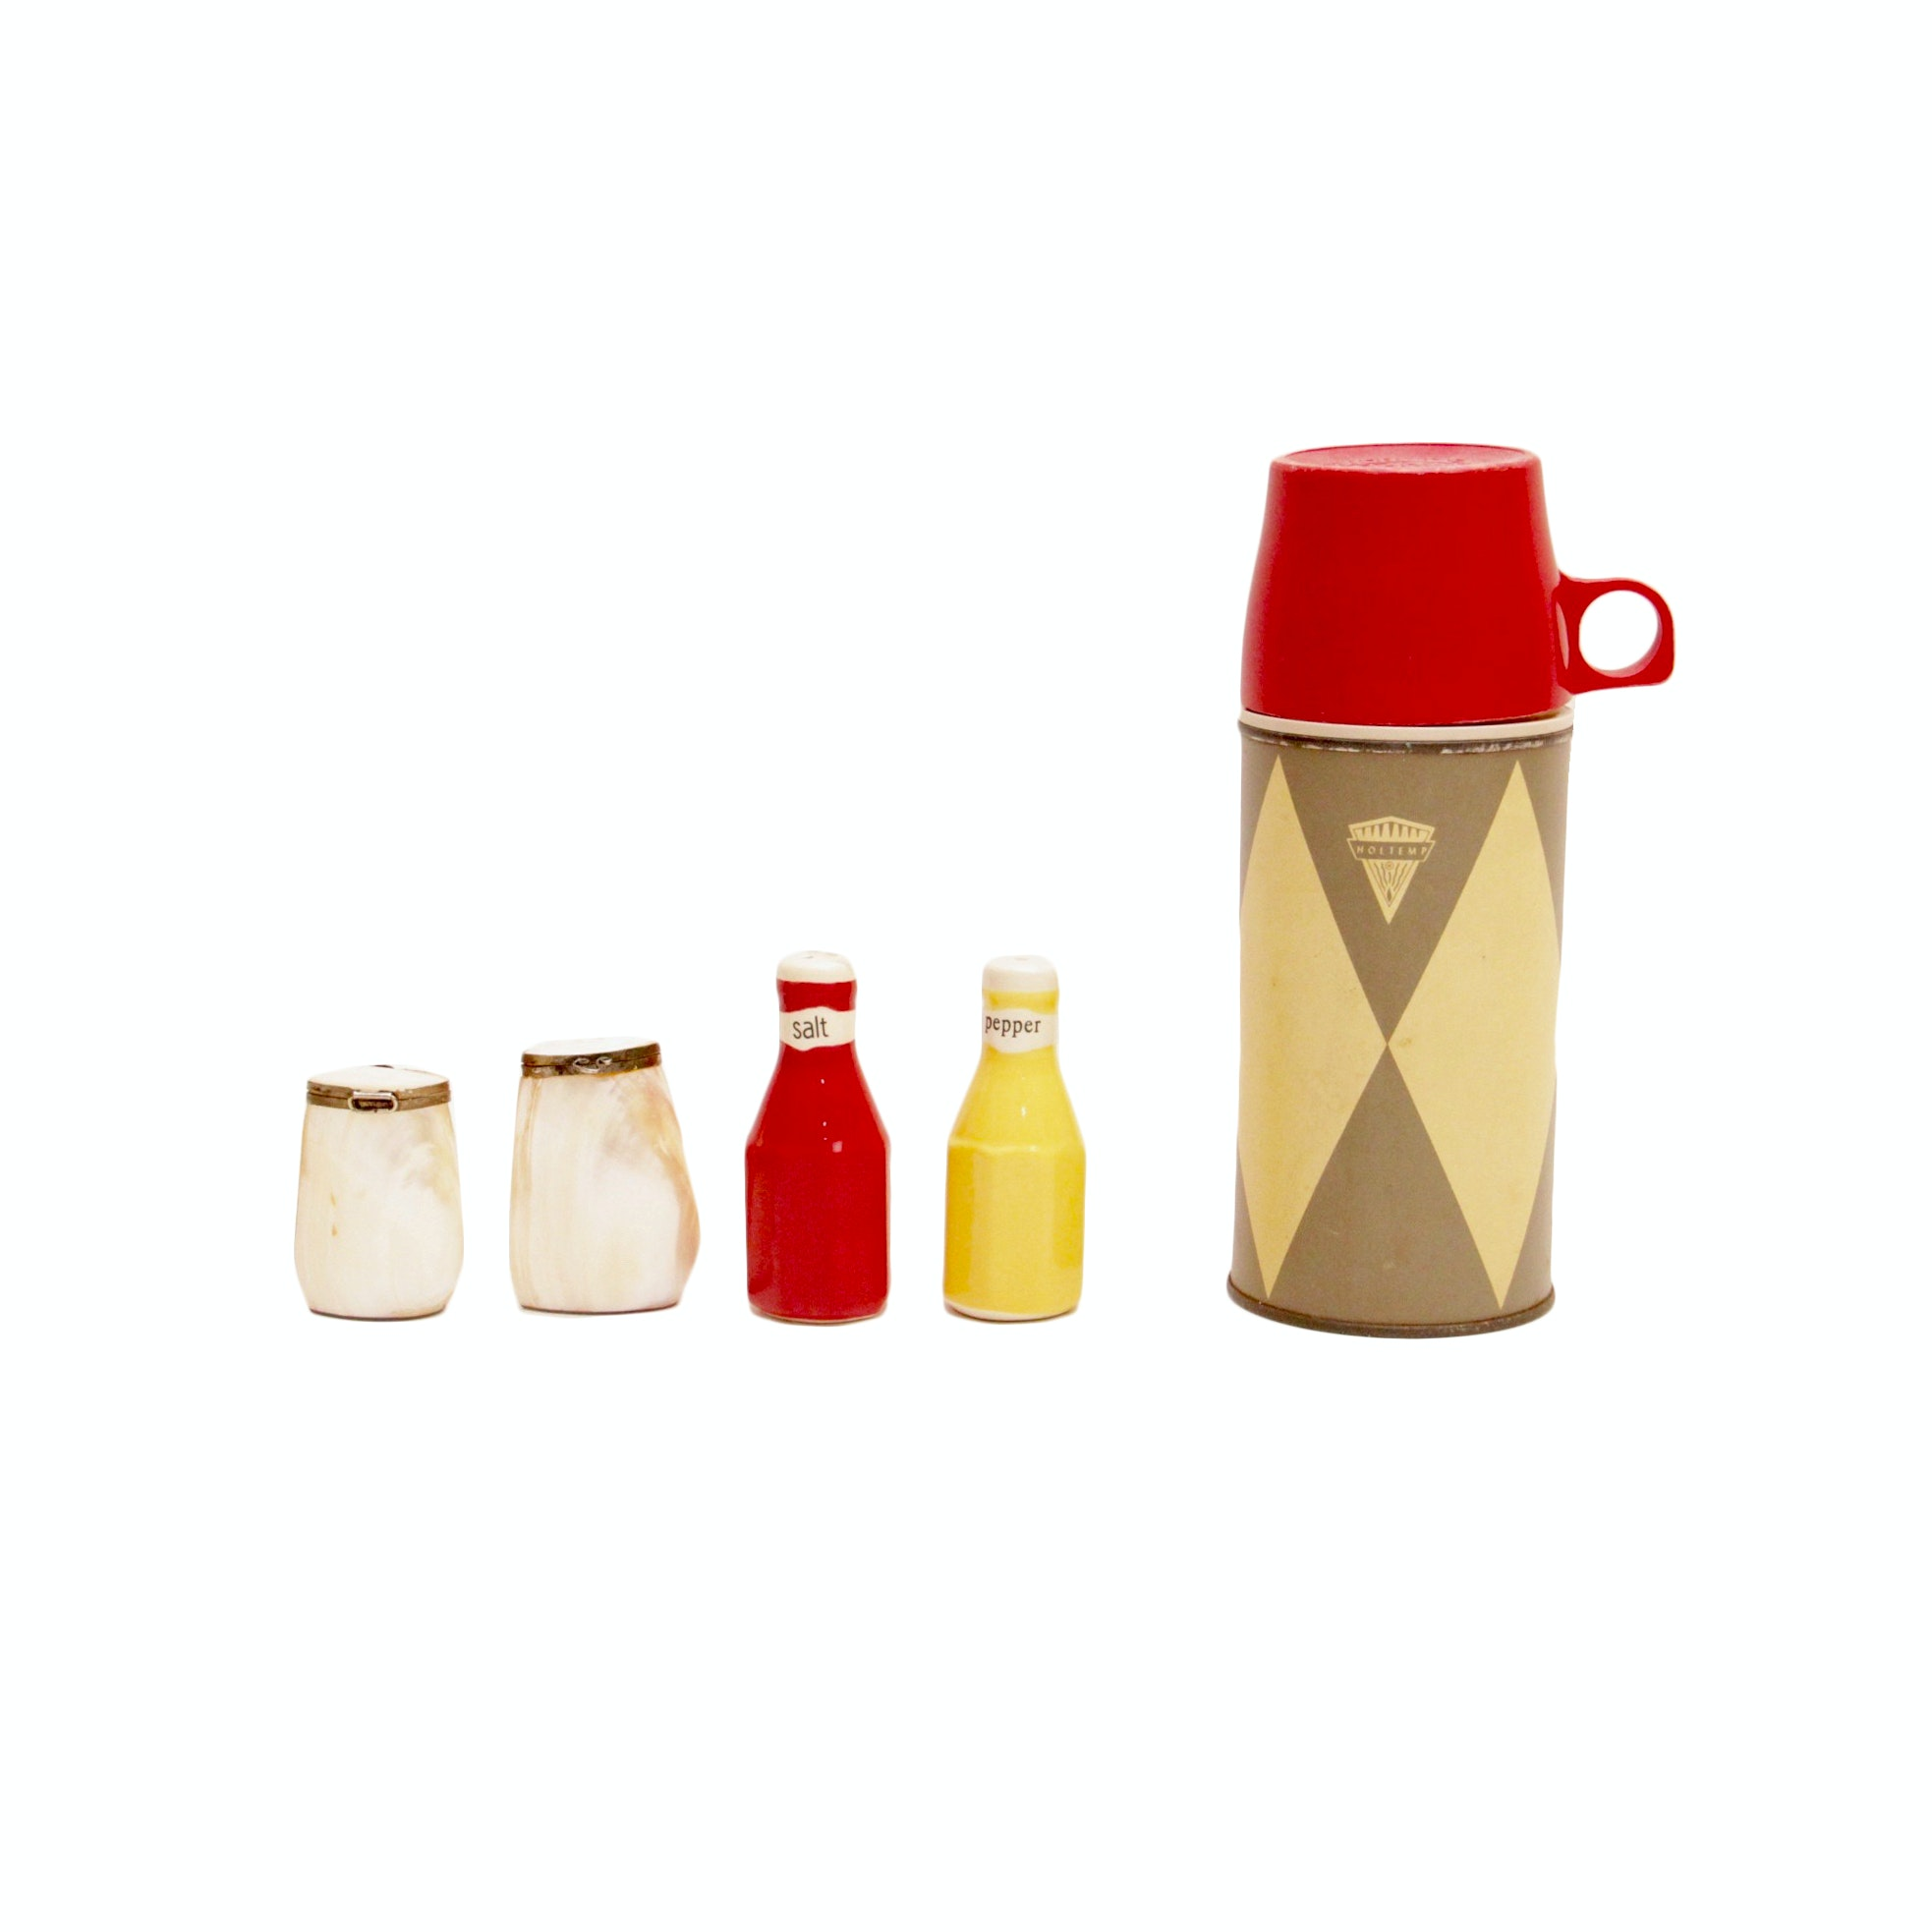 Vintage Thermos and Shaker Sets